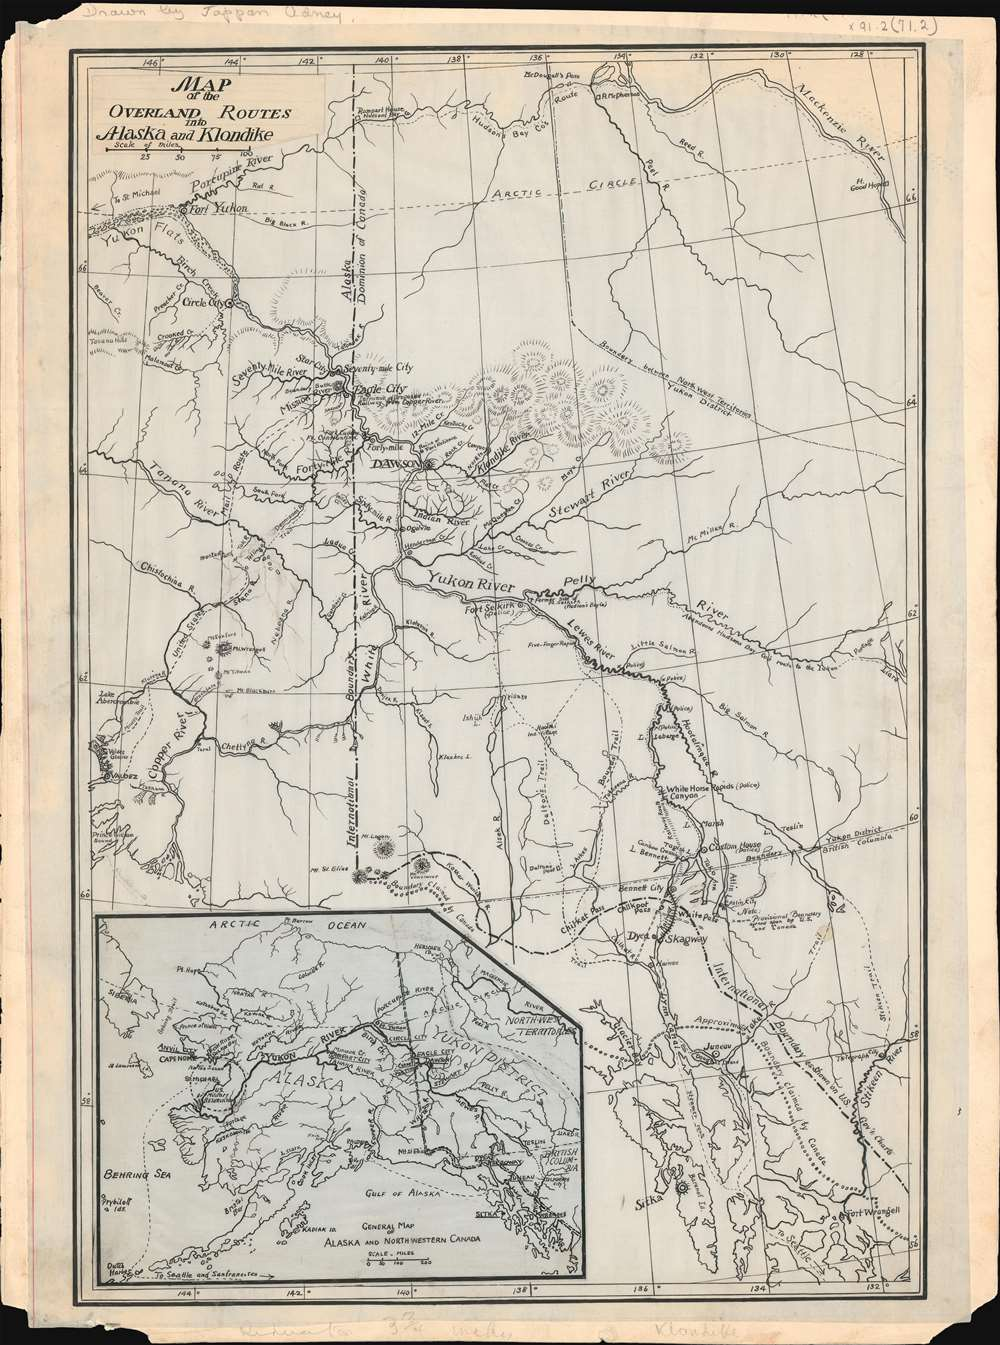 map of th overland routes into alaska and klondike